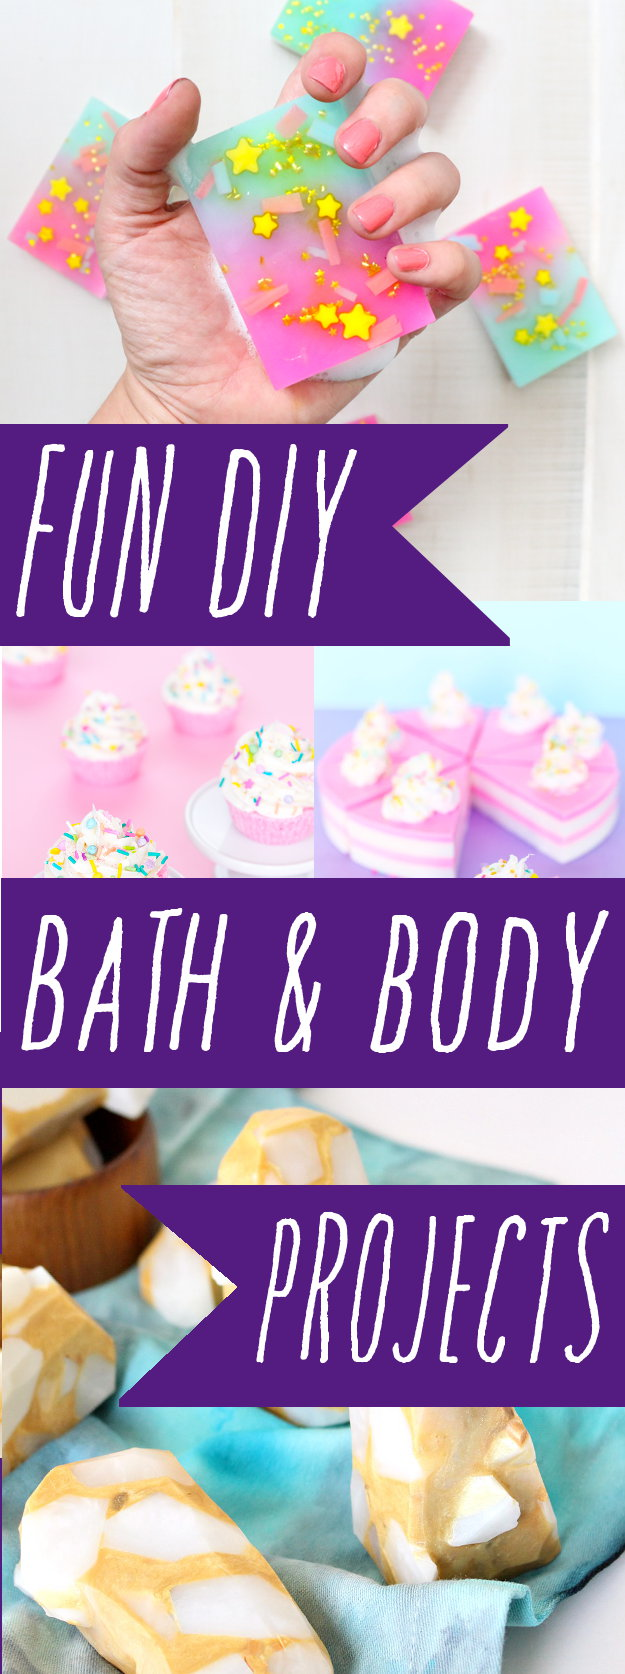 Ten super fun DIY bath & body projects you can create this weekend! Homemade soaps, bath bombs, scrubs and body balms to get you in the creative spirit!